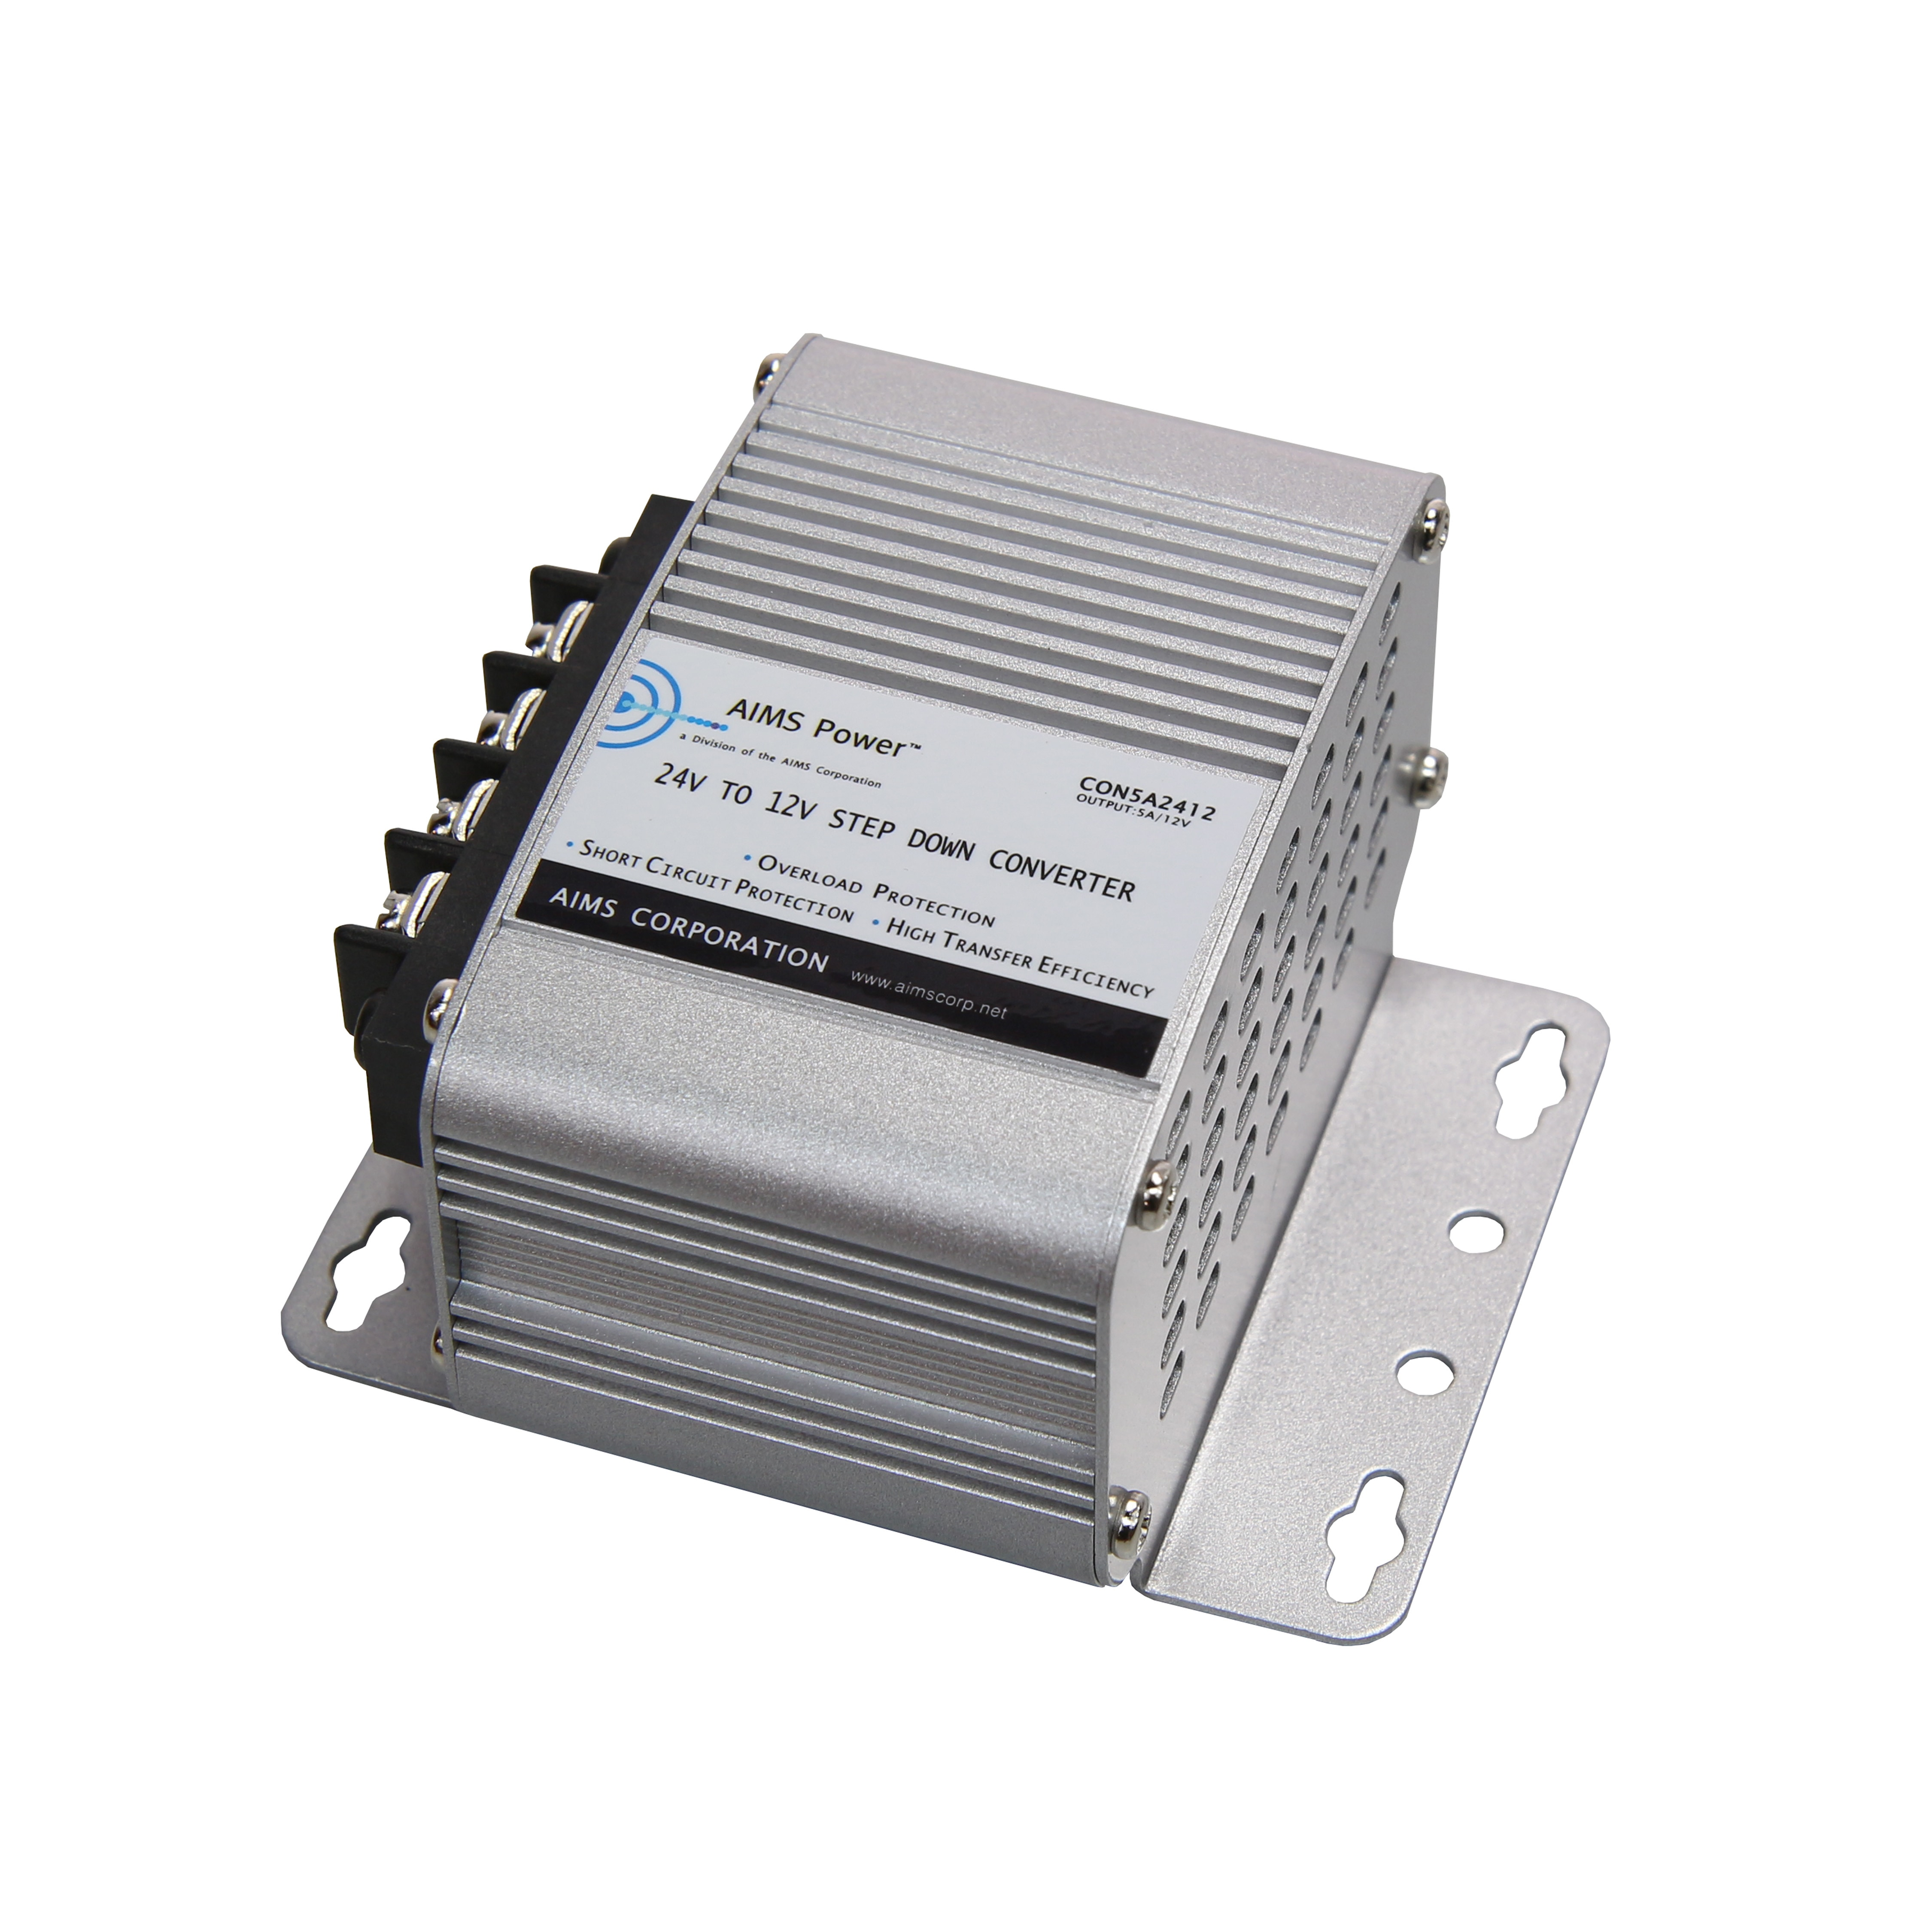 AIMS Power - DC to DC Converter / 24 to 12Vdc 151014601